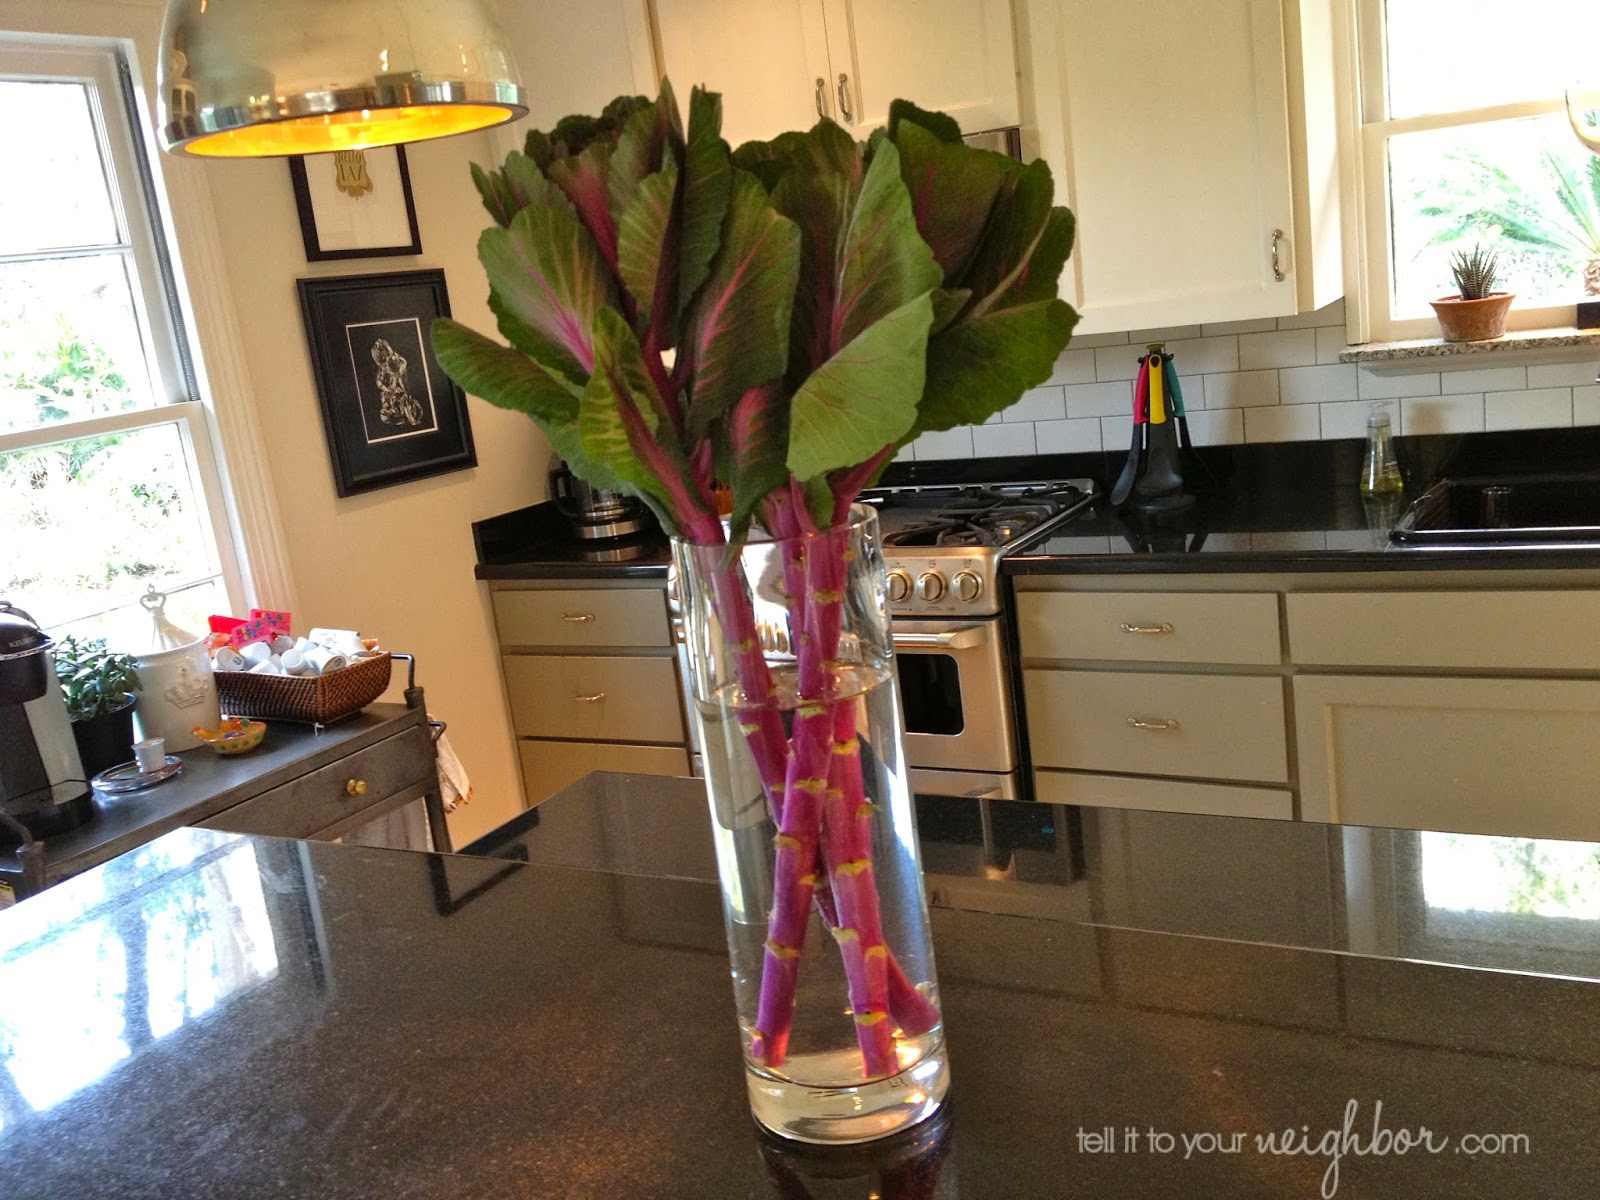 speedy floral arrangement, ornamental cabbage